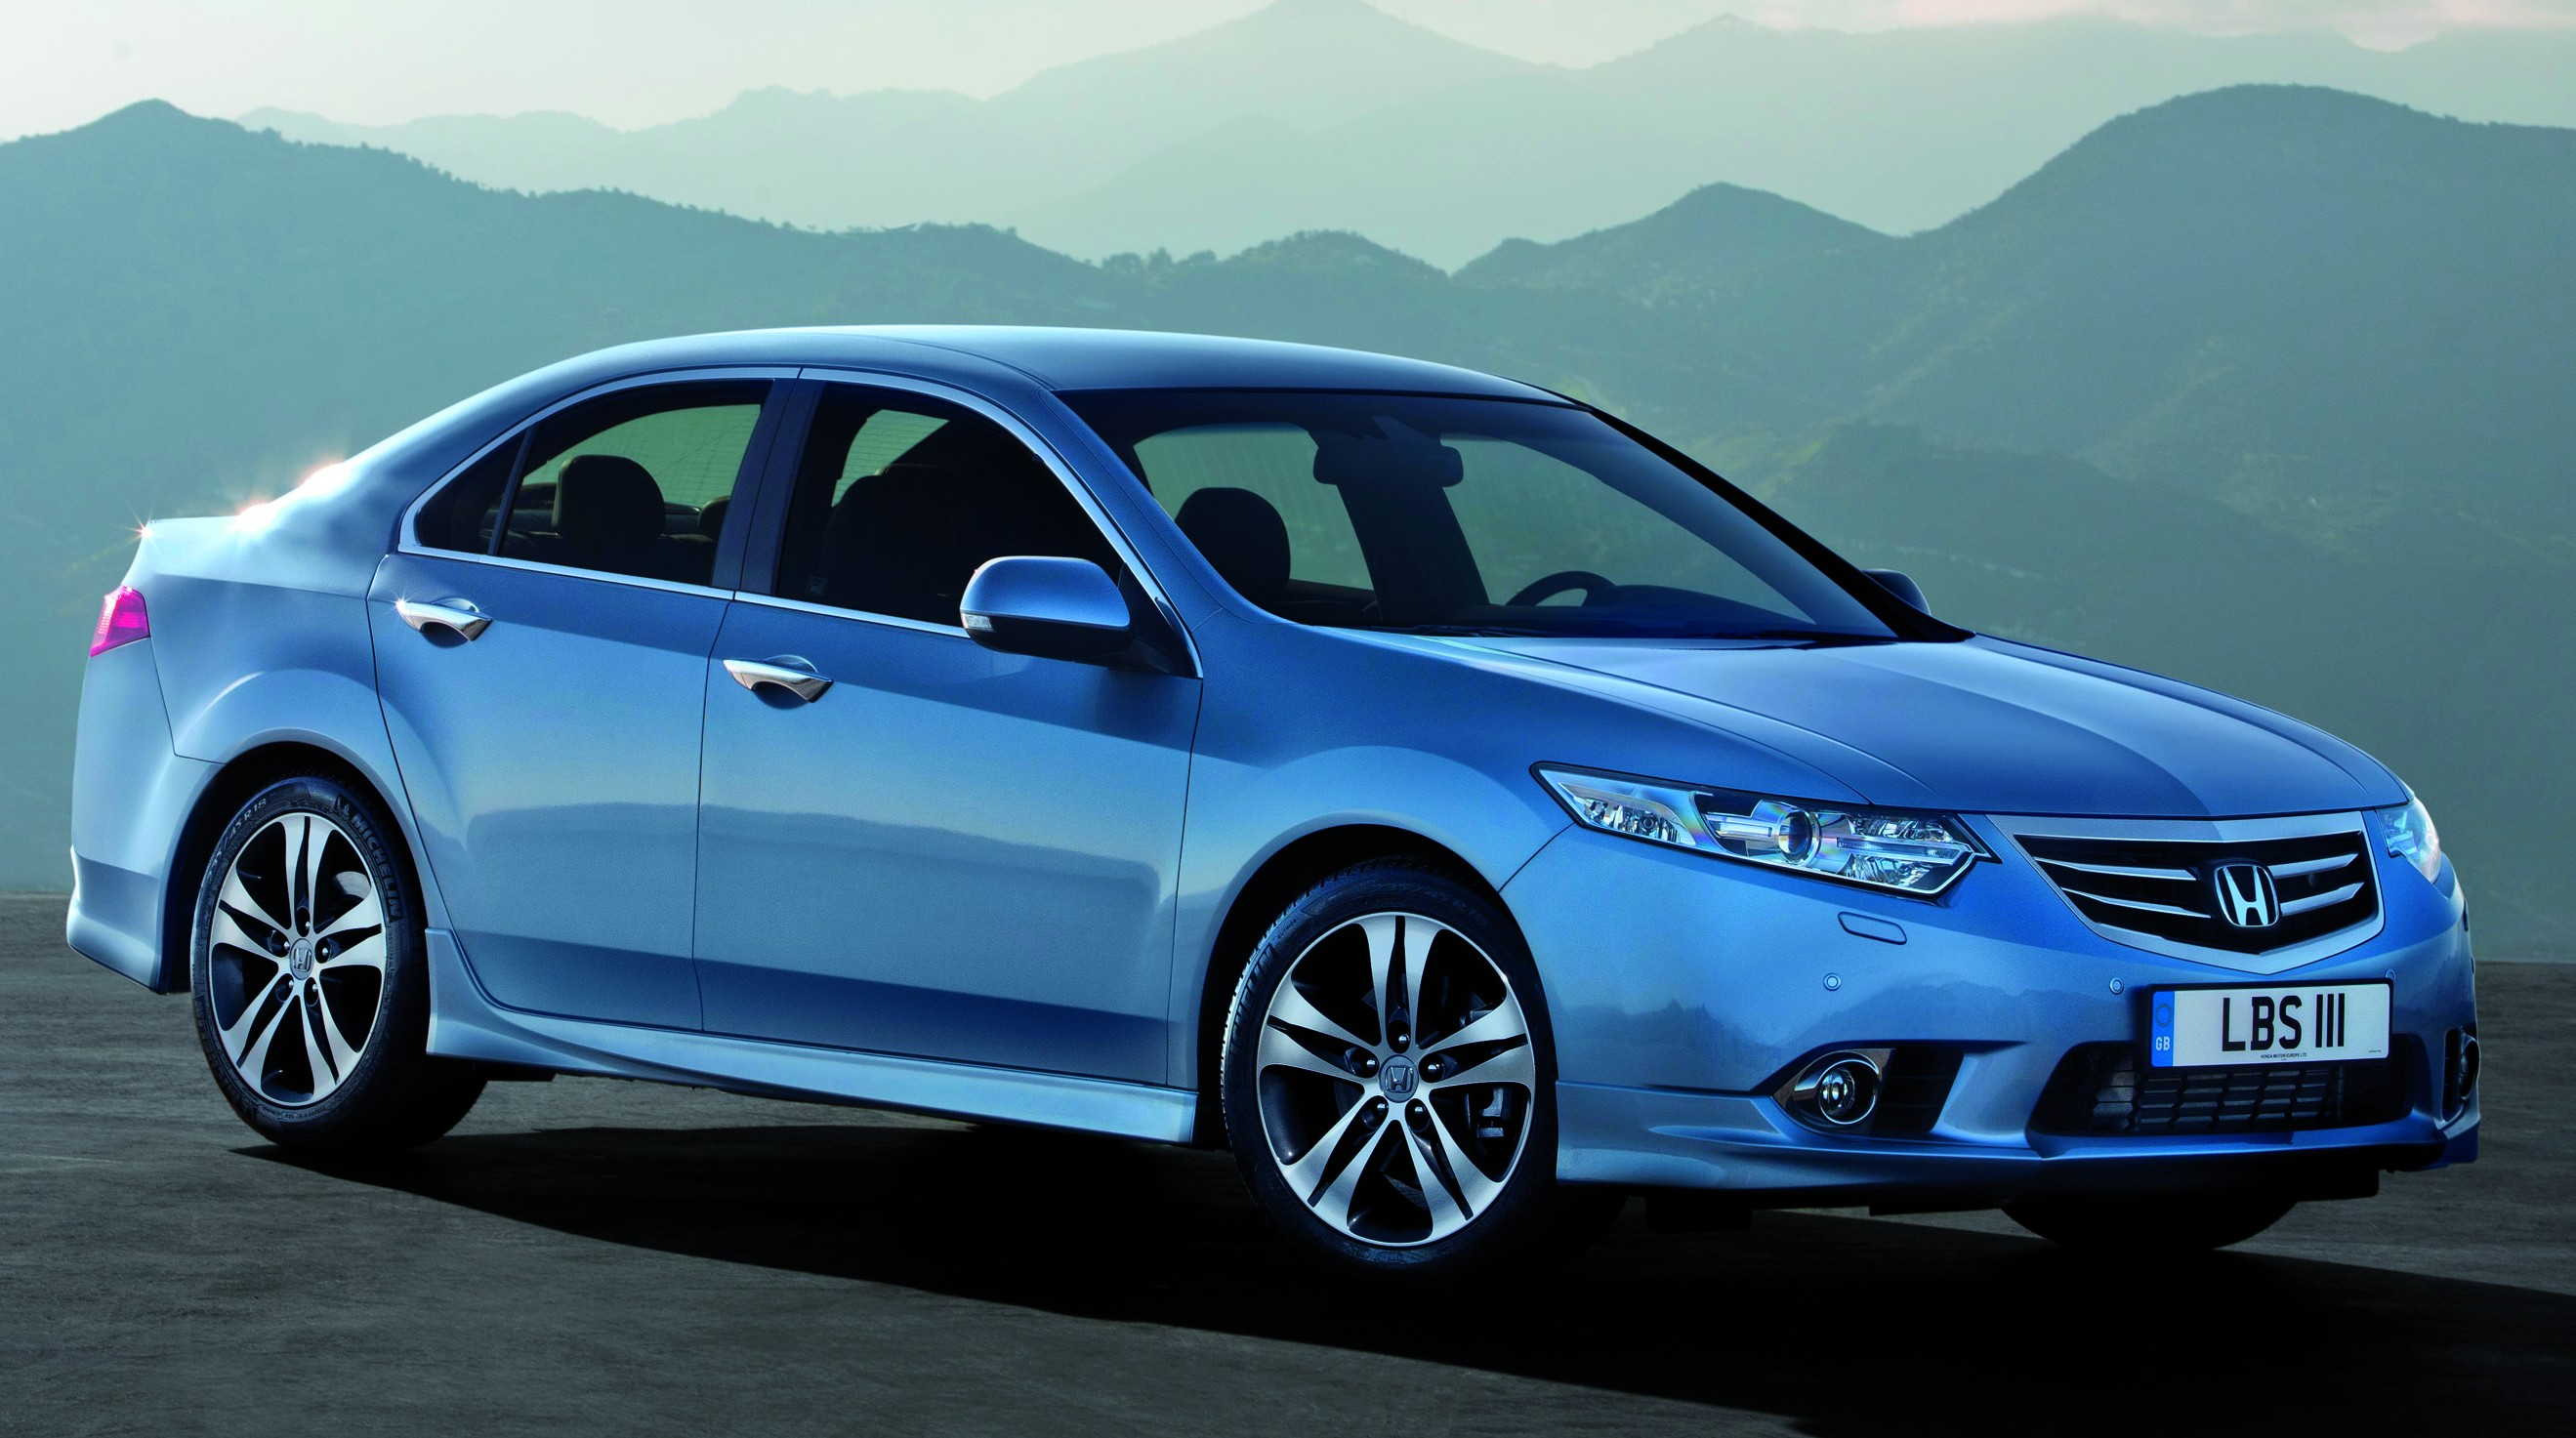 2015 Honda Accord For Sale >> Honda Accord Euro to be terminated globally in 2015